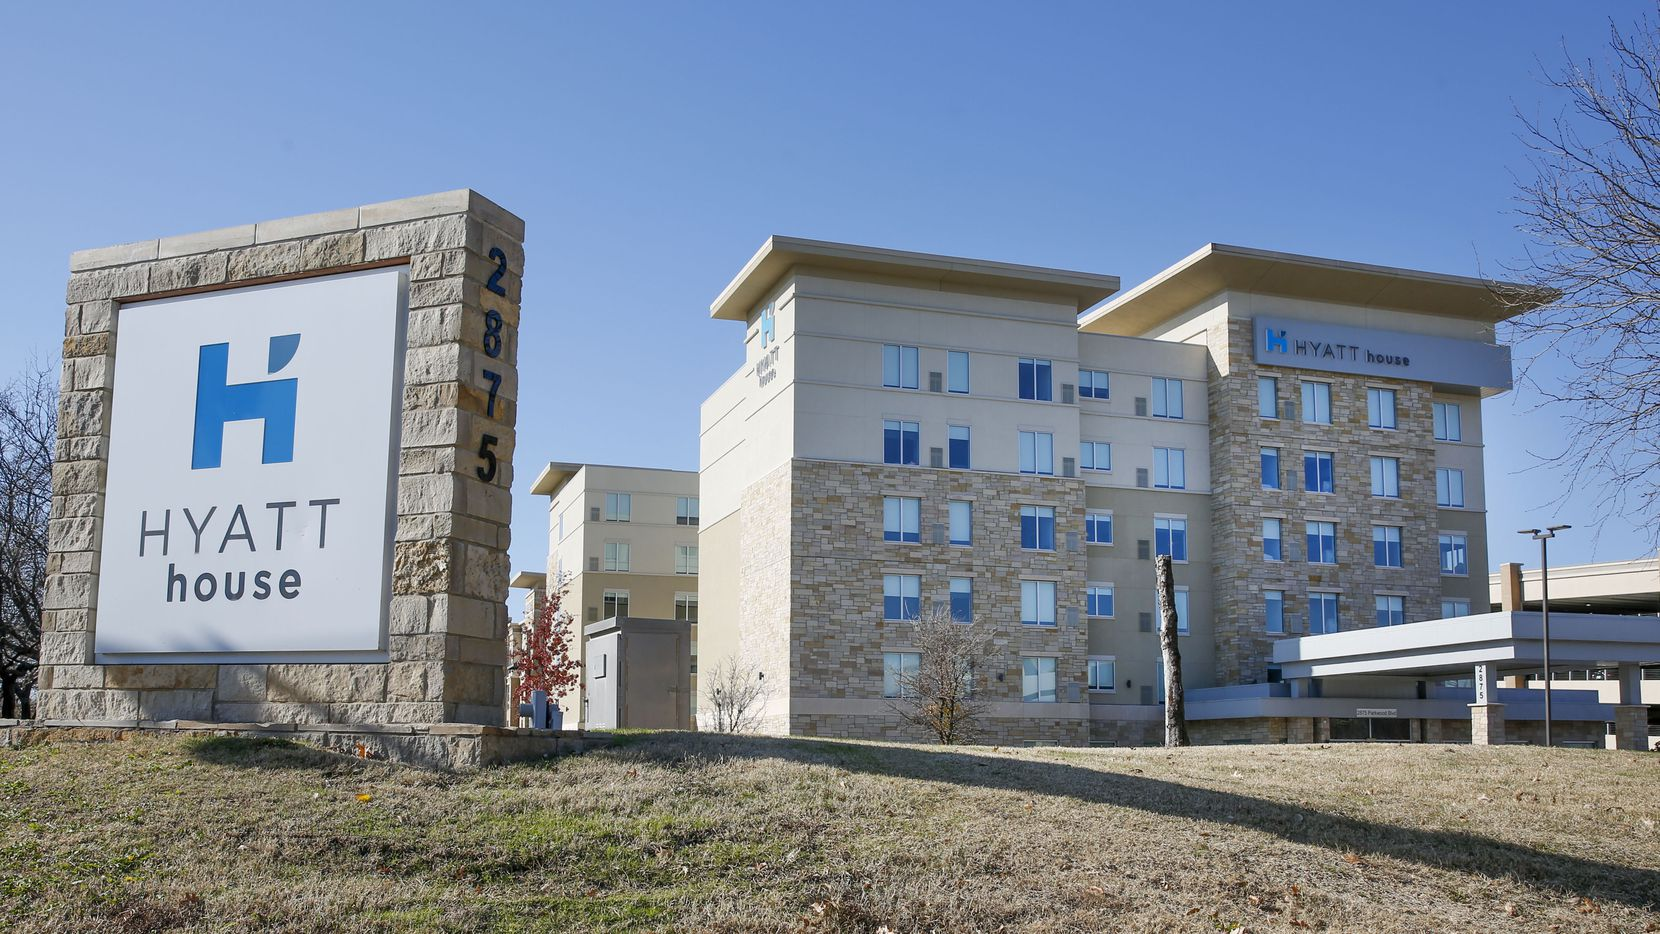 The Hyatt House on Parkwood Boulevard in Frisco is one of the hotels listed in the lawsuit.